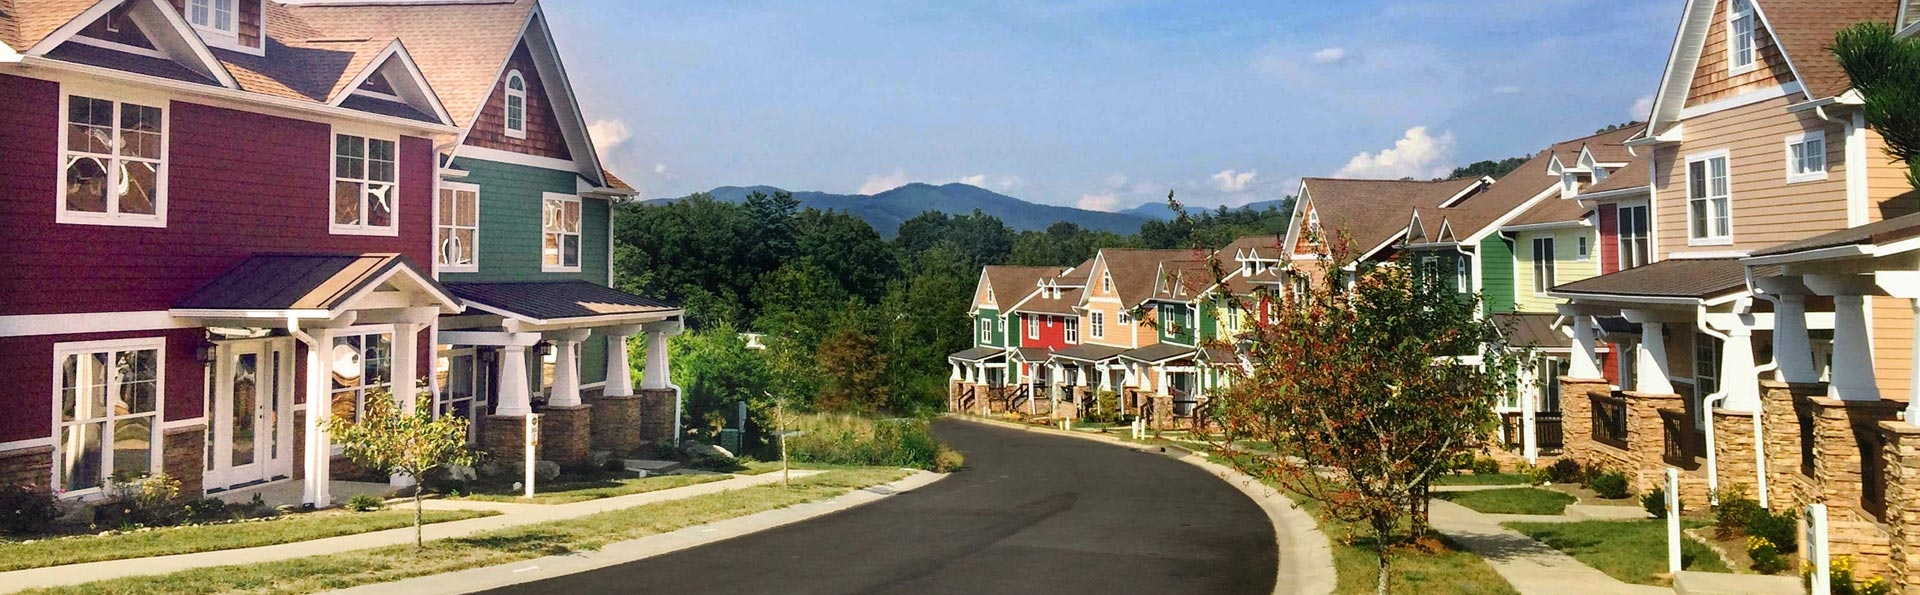 Waterstone Townhomes, Asheville, NC